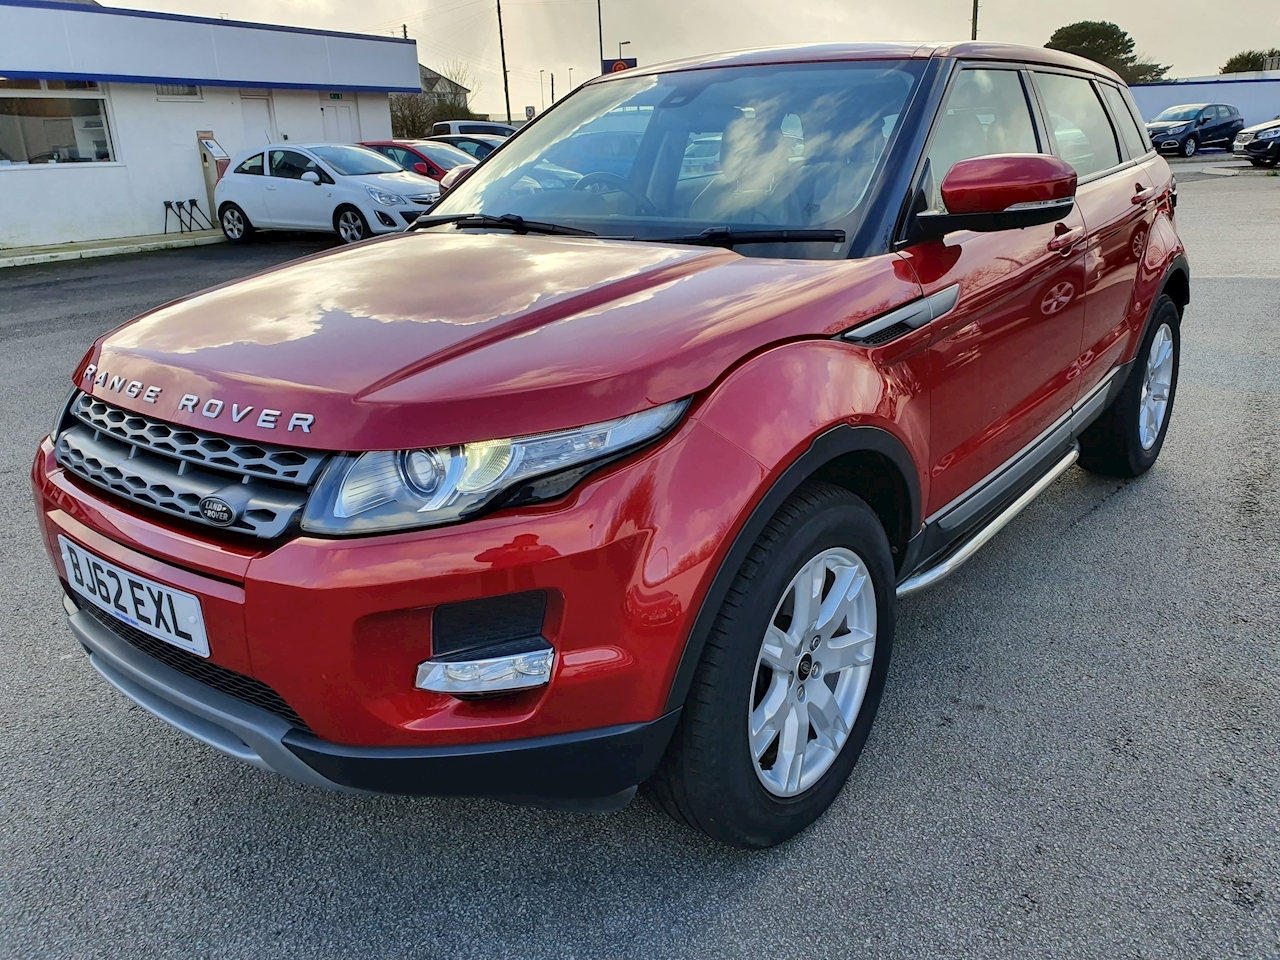 Land Rover Range Rover Evoque Td4 Pure Estate 2.2 Manual Diesel